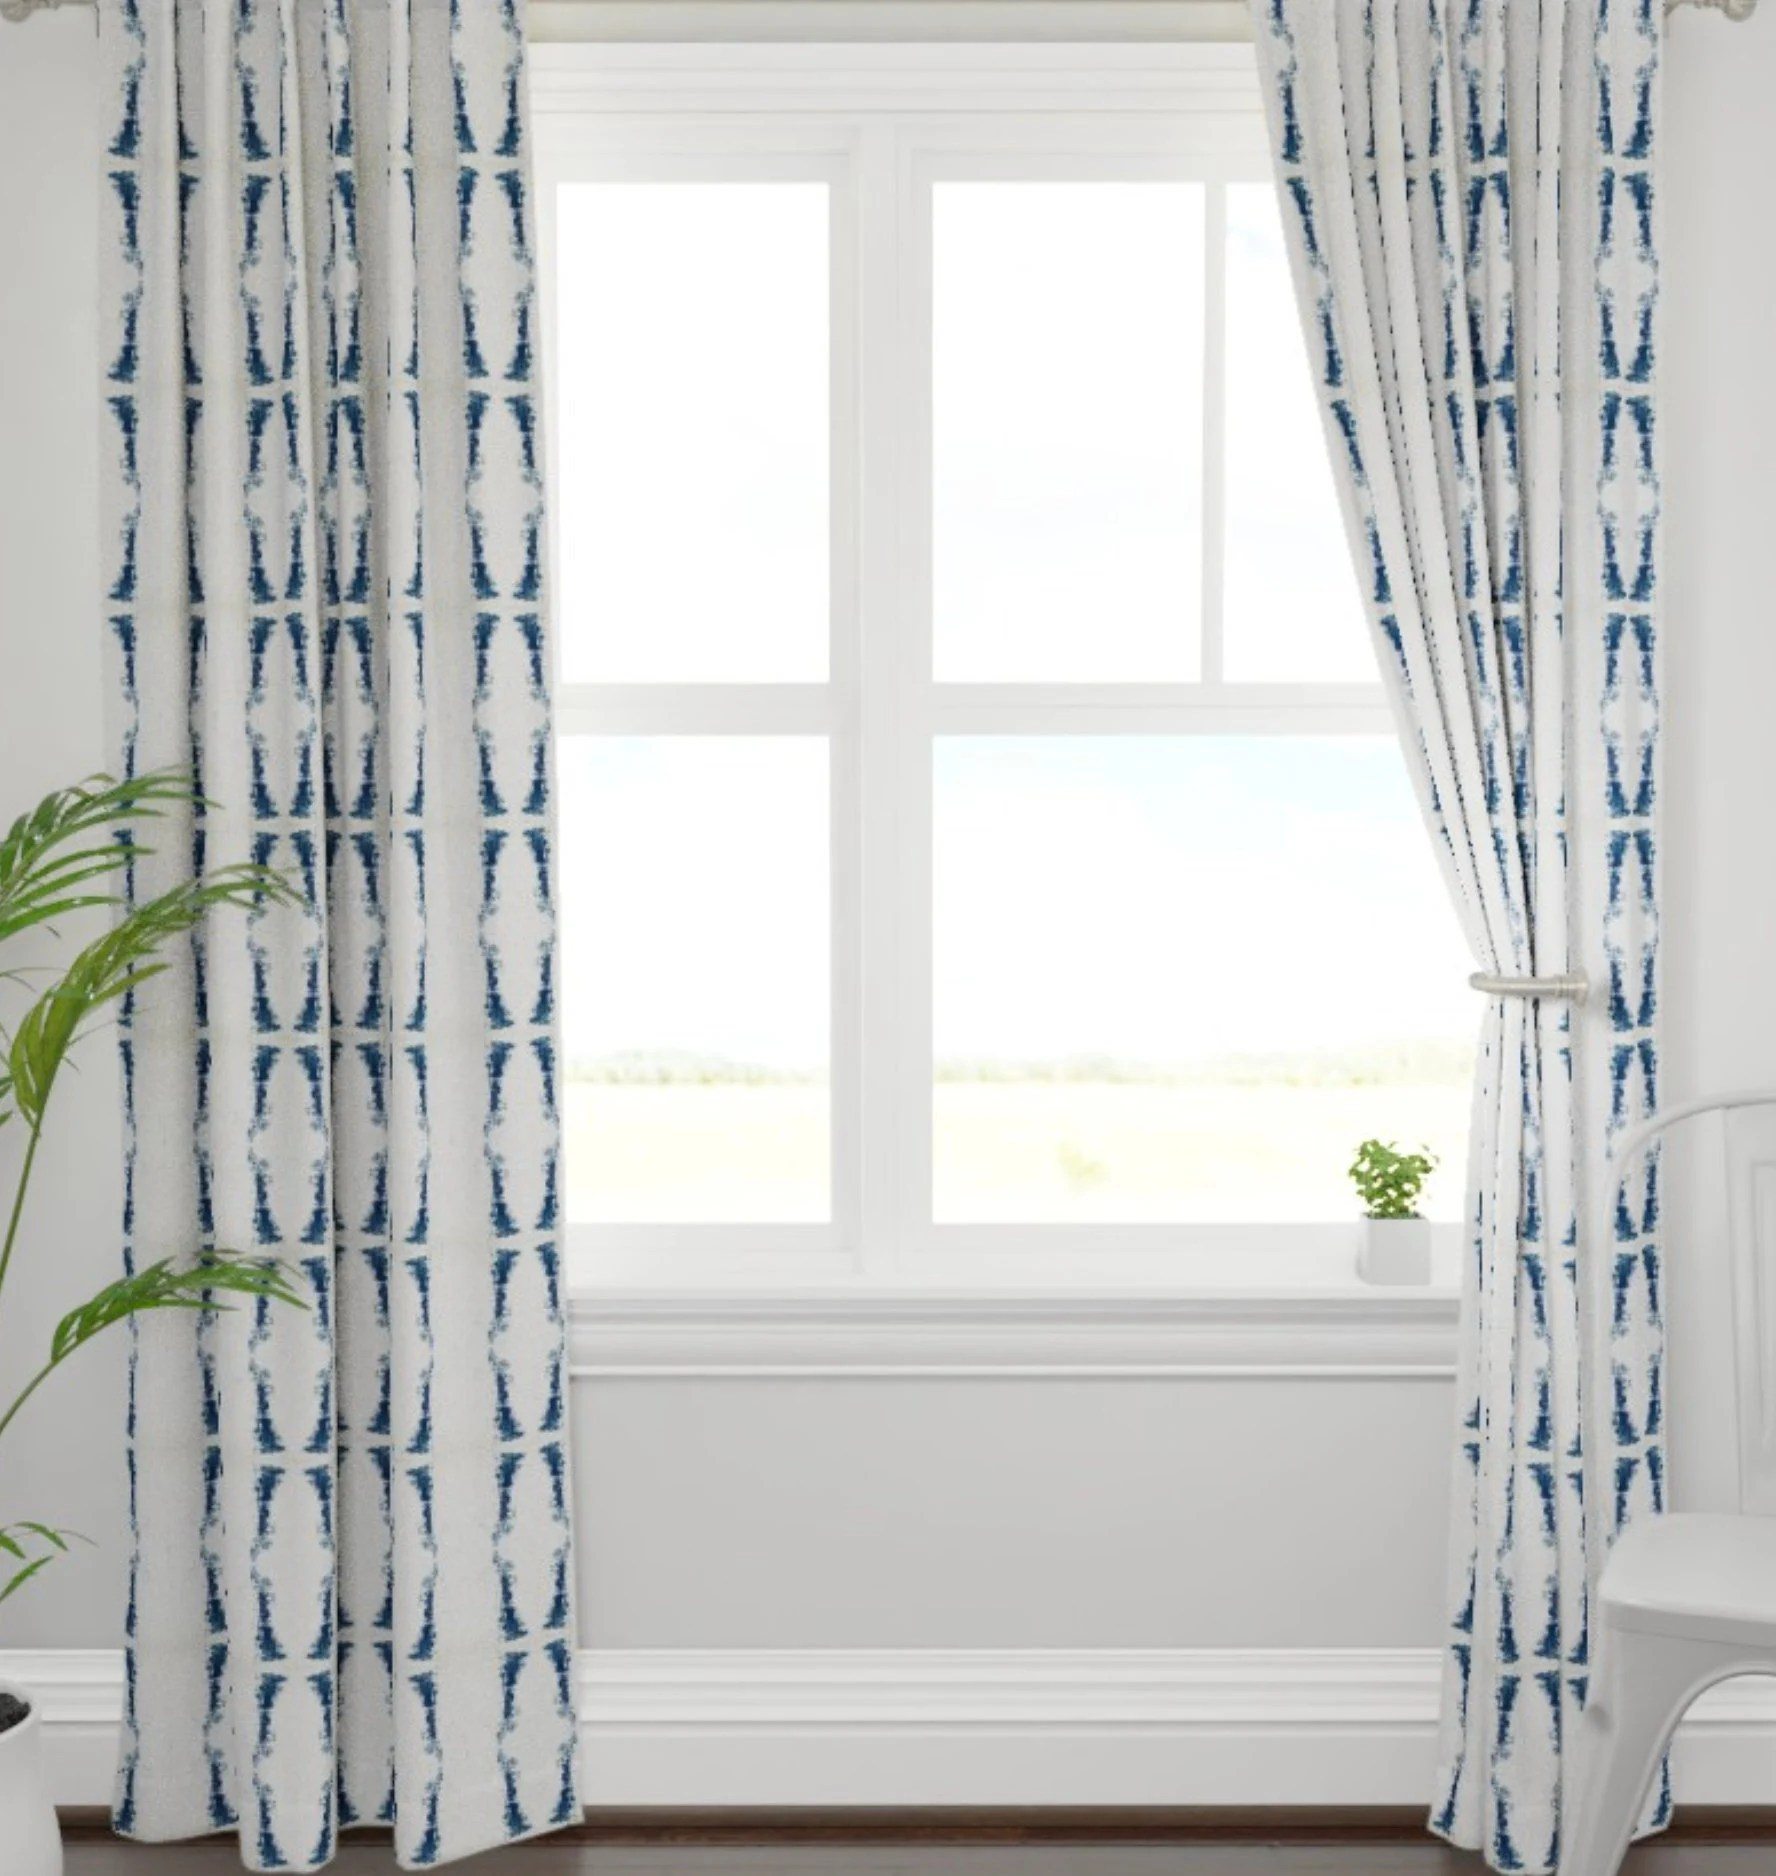 Dark Blue And Grey Curtains Navy Curtains Dark Blue And White Drapes Navy Ikat Curtains Navy Ikat Drapes Navy White Window Treatments Dining Room Curtains Navy Lined